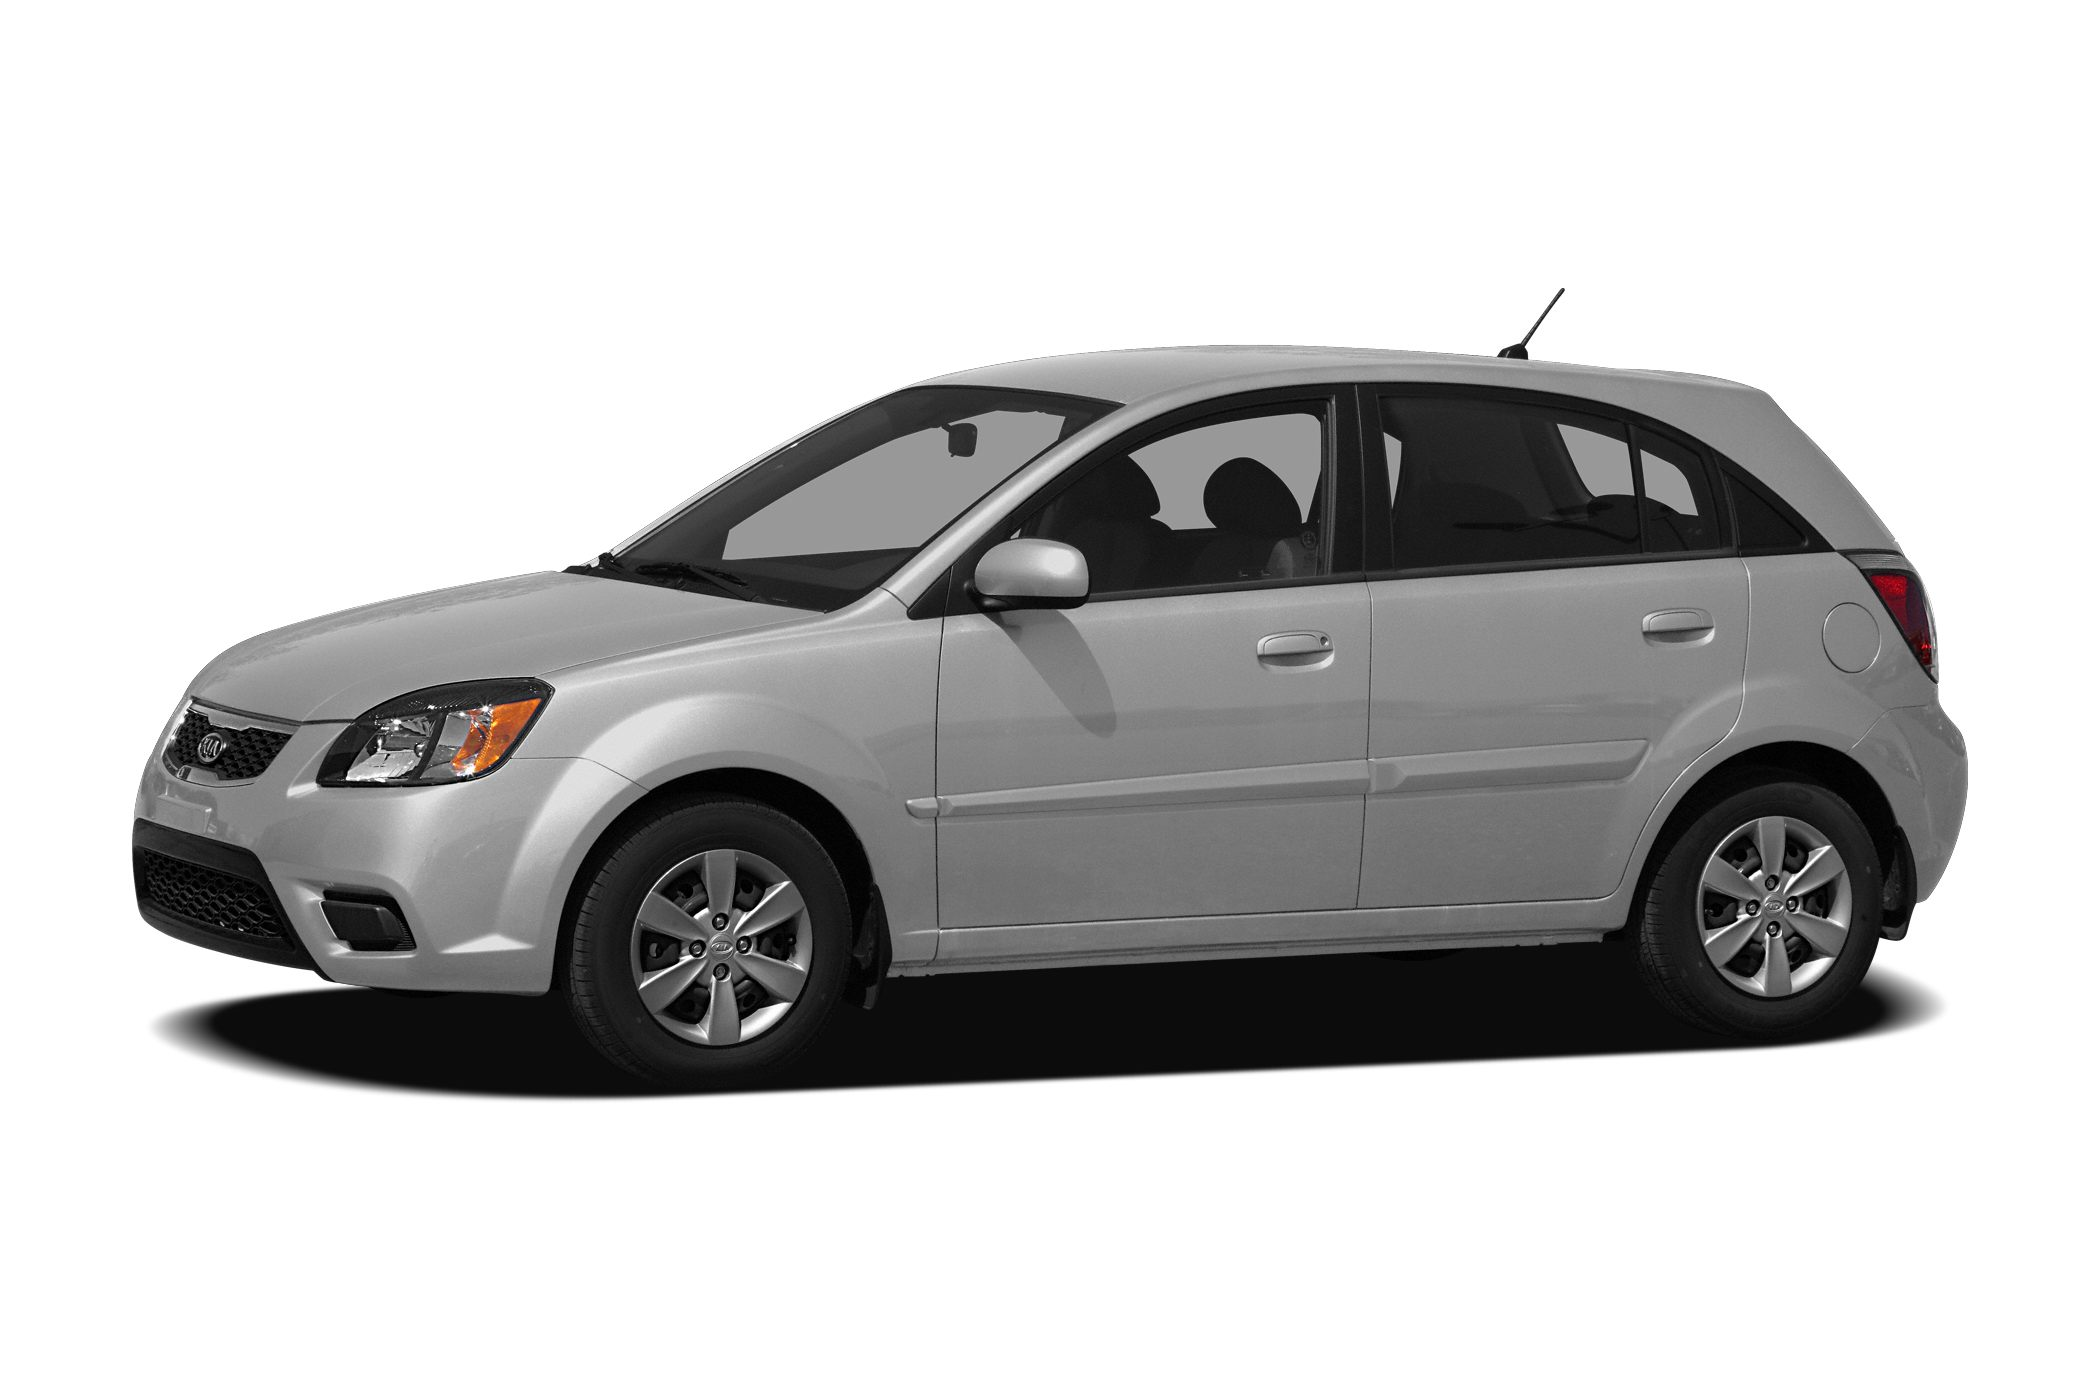 2010 Kia Rio5 SX Hatchback for sale in Nashville for $0 with 86,044 miles